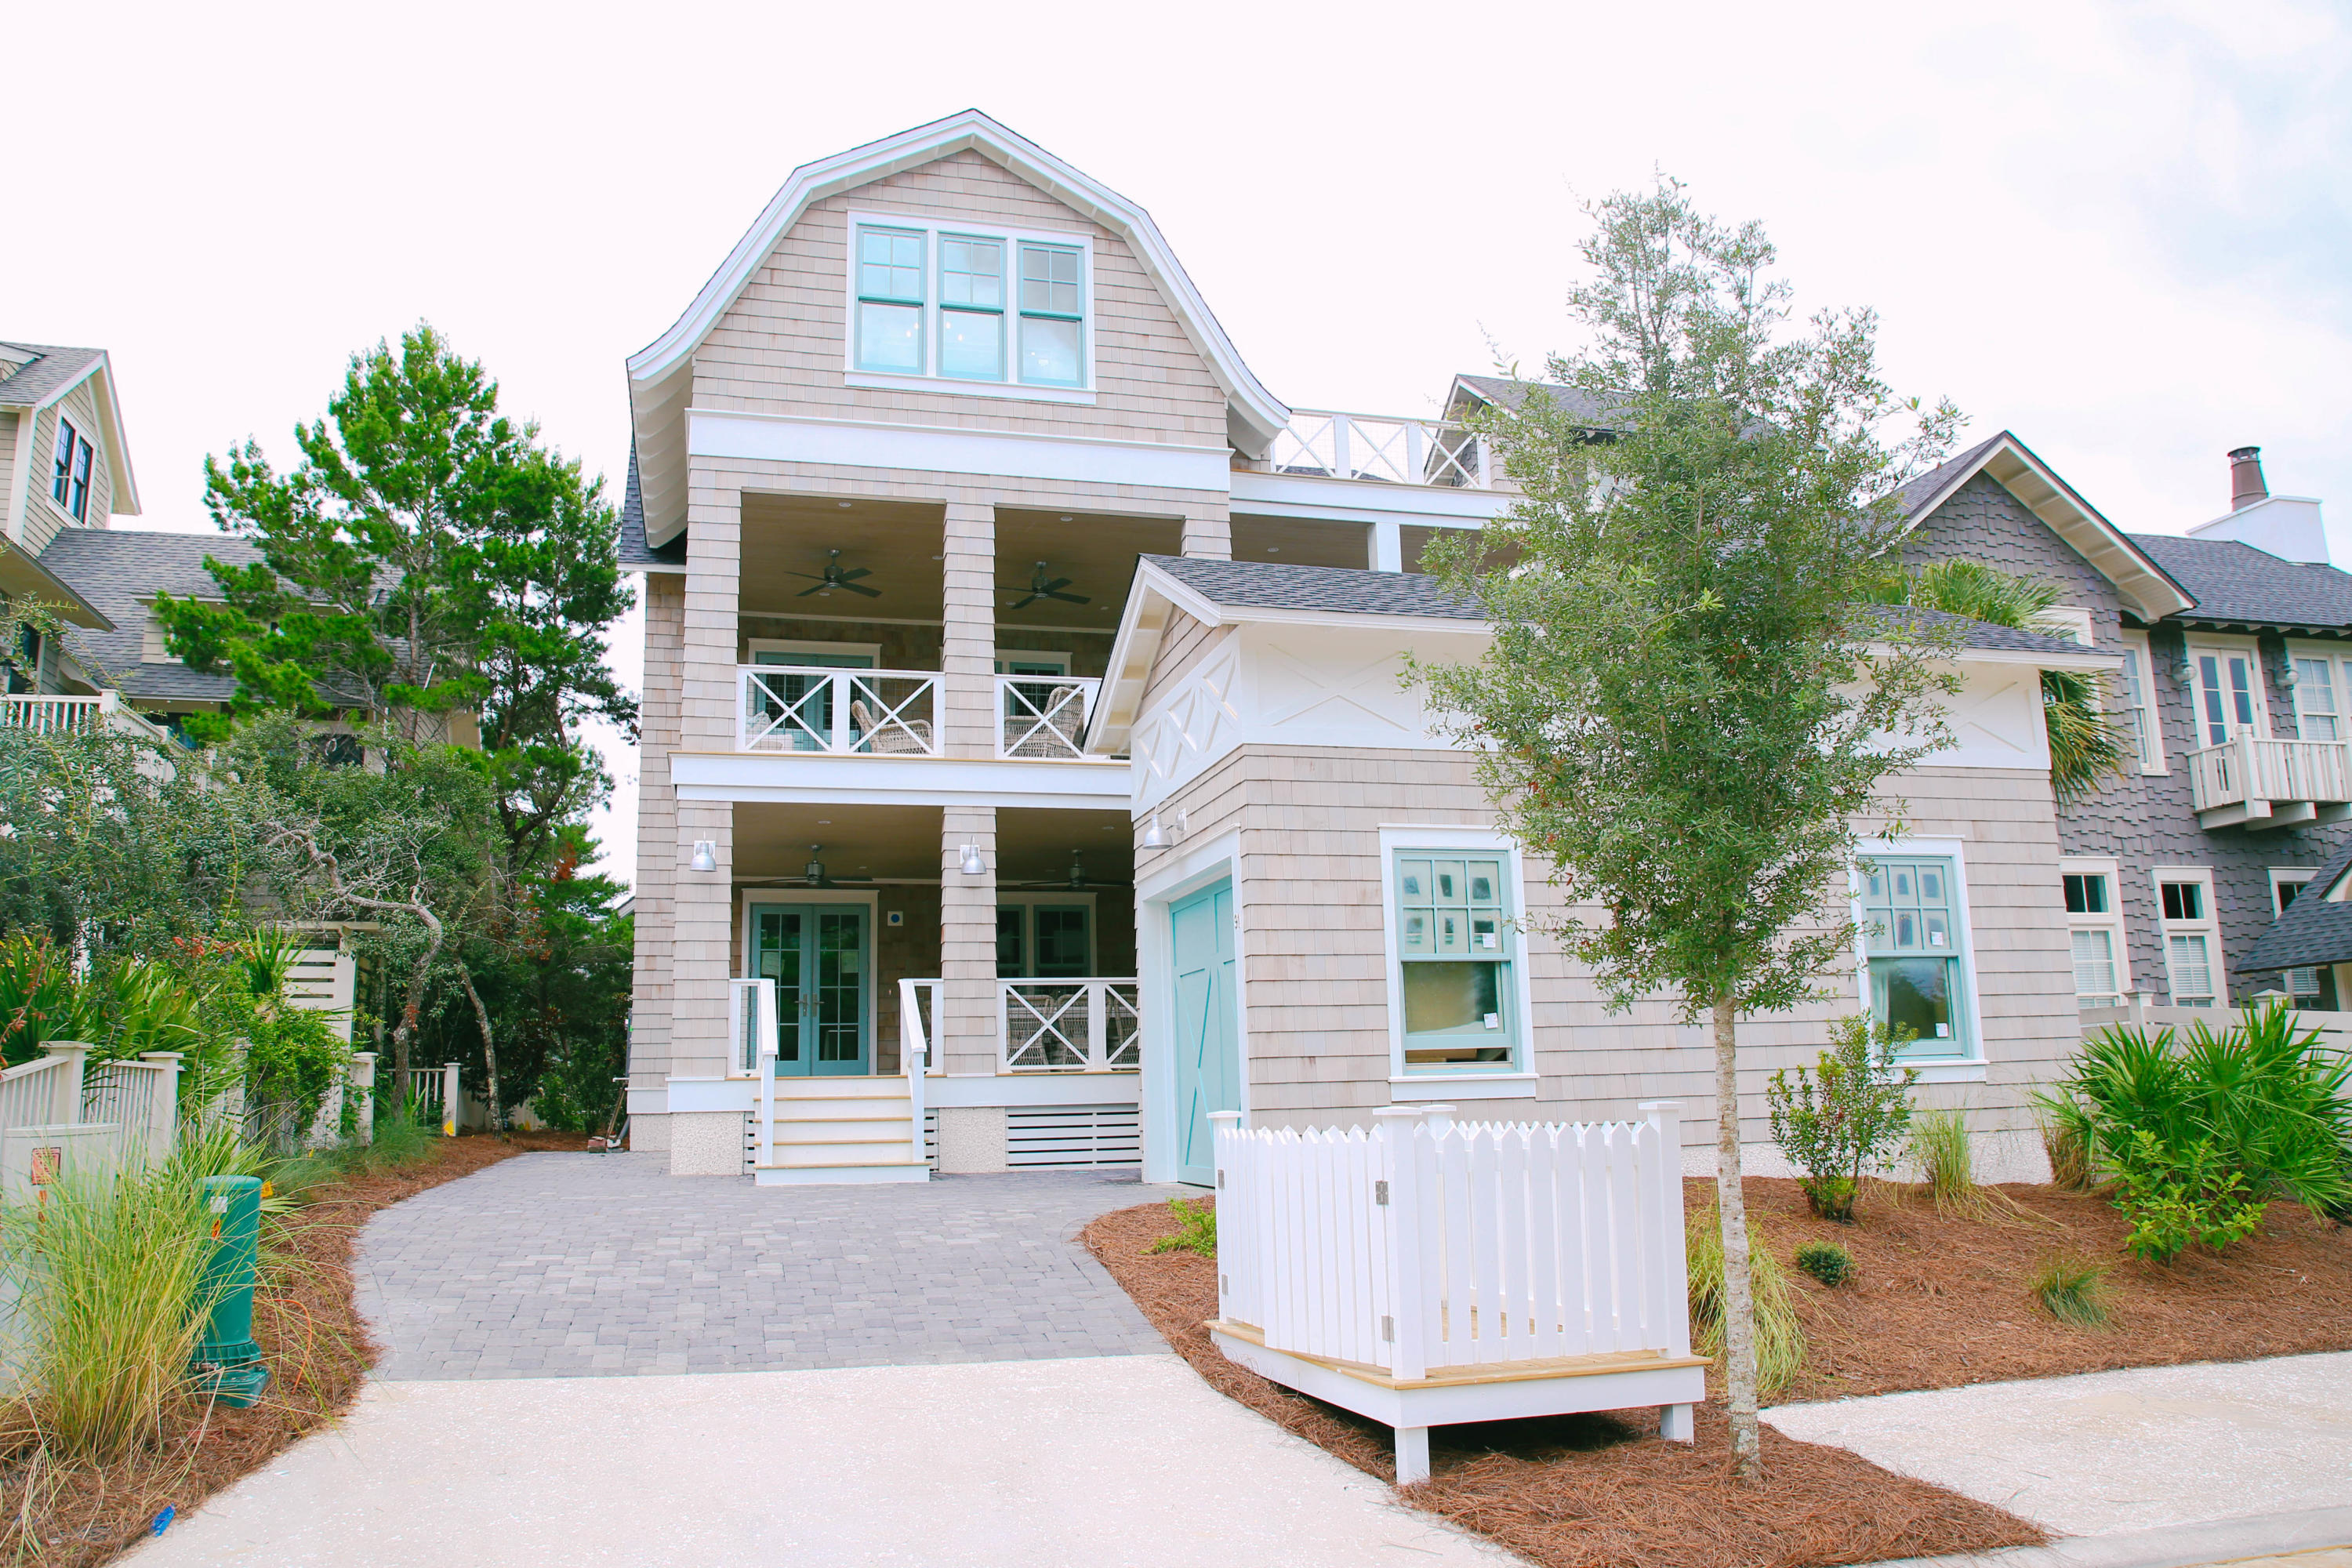 91 Shingle,Watersound,Florida 32461,6 Bedrooms Bedrooms,6 BathroomsBathrooms,Detached single family,Shingle,20131126143817002353000000